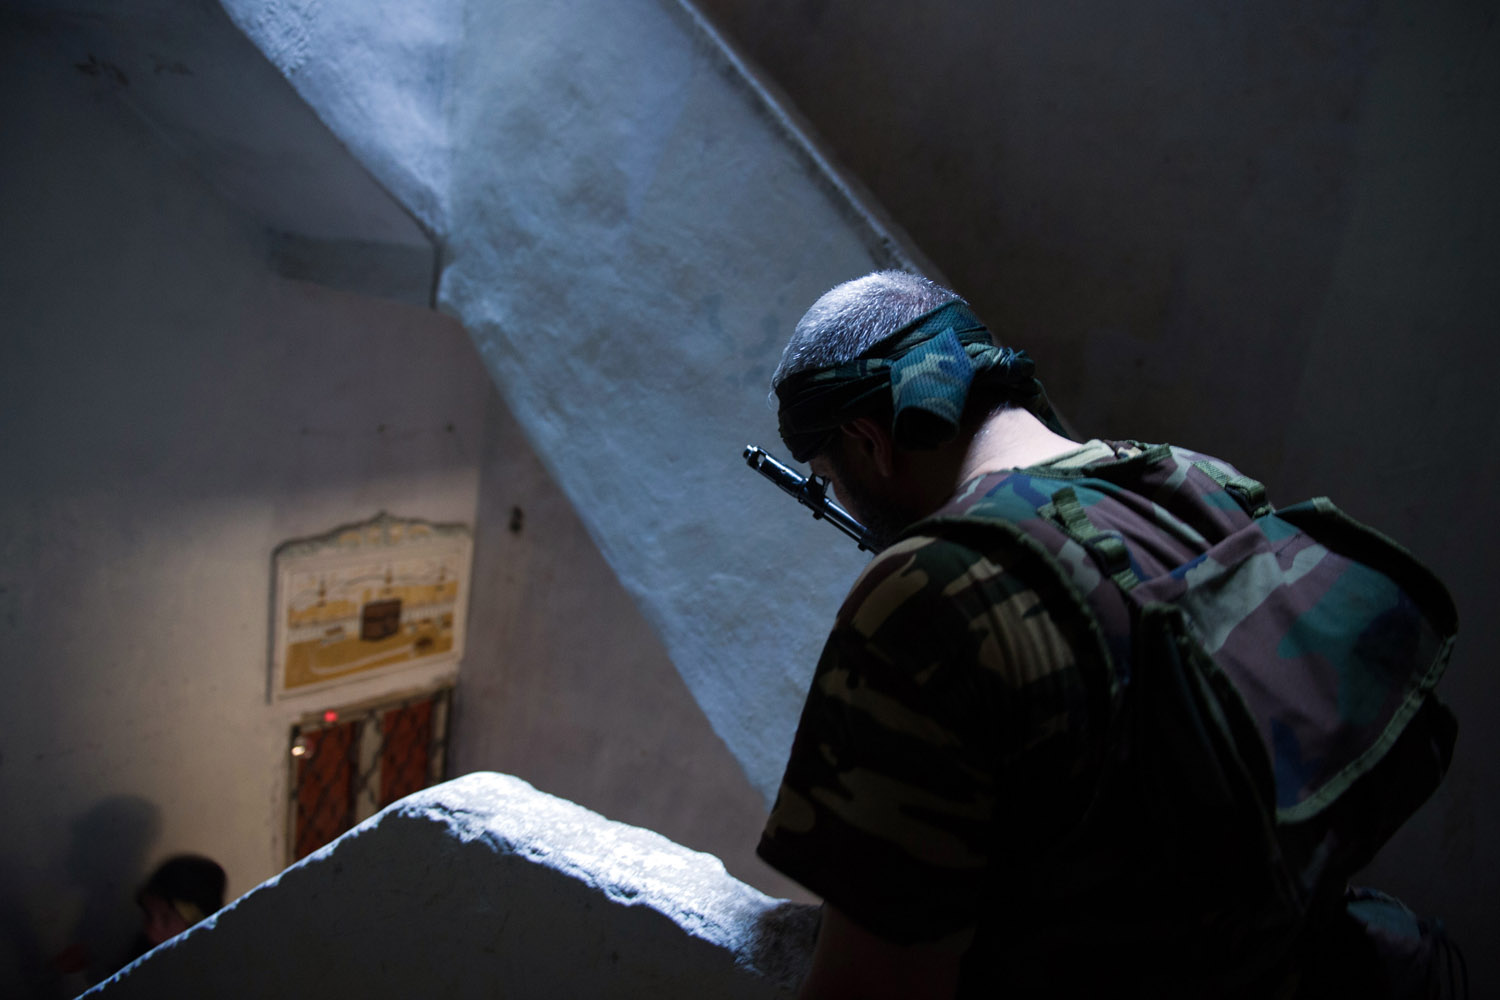 Aug. 10, 2012. A rebel from the Free Syrian Army (FSA) stands in the stairwell of a building being used as an access route in the Salaheddin district of the northern restive city of Aleppo.